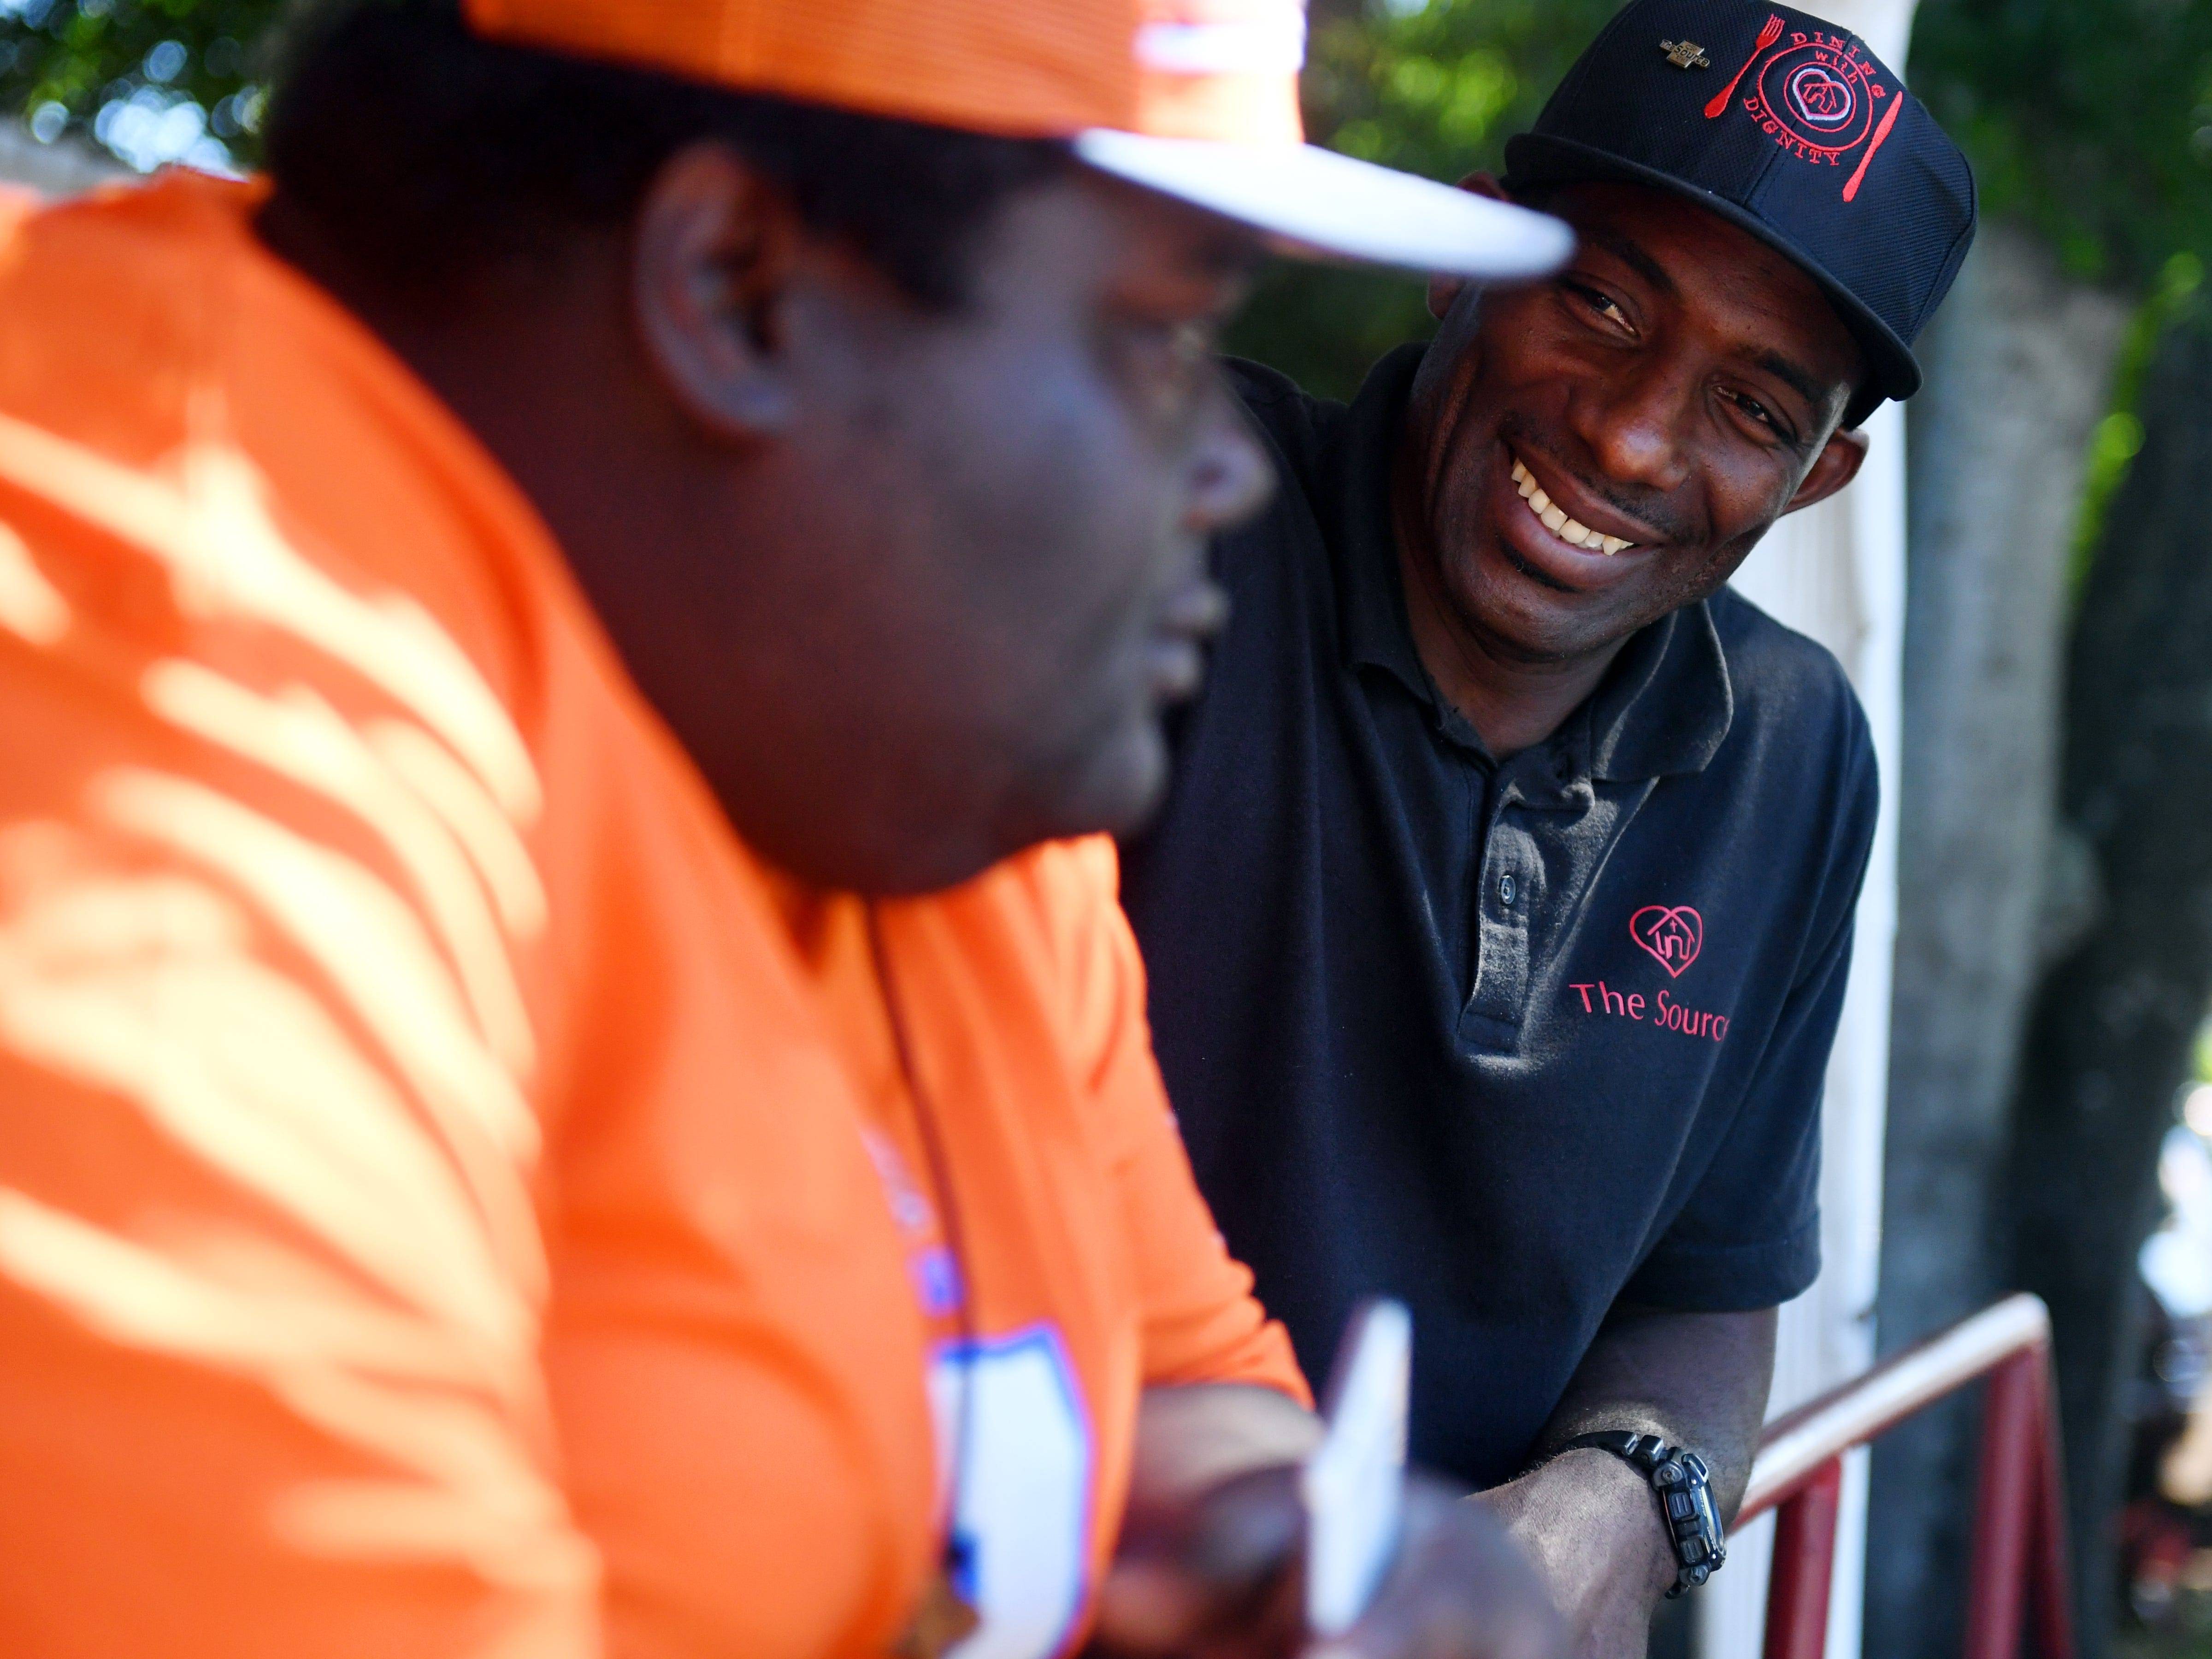 Former NFL, LSU football player rebounds from drug addiction, homelessness to help others